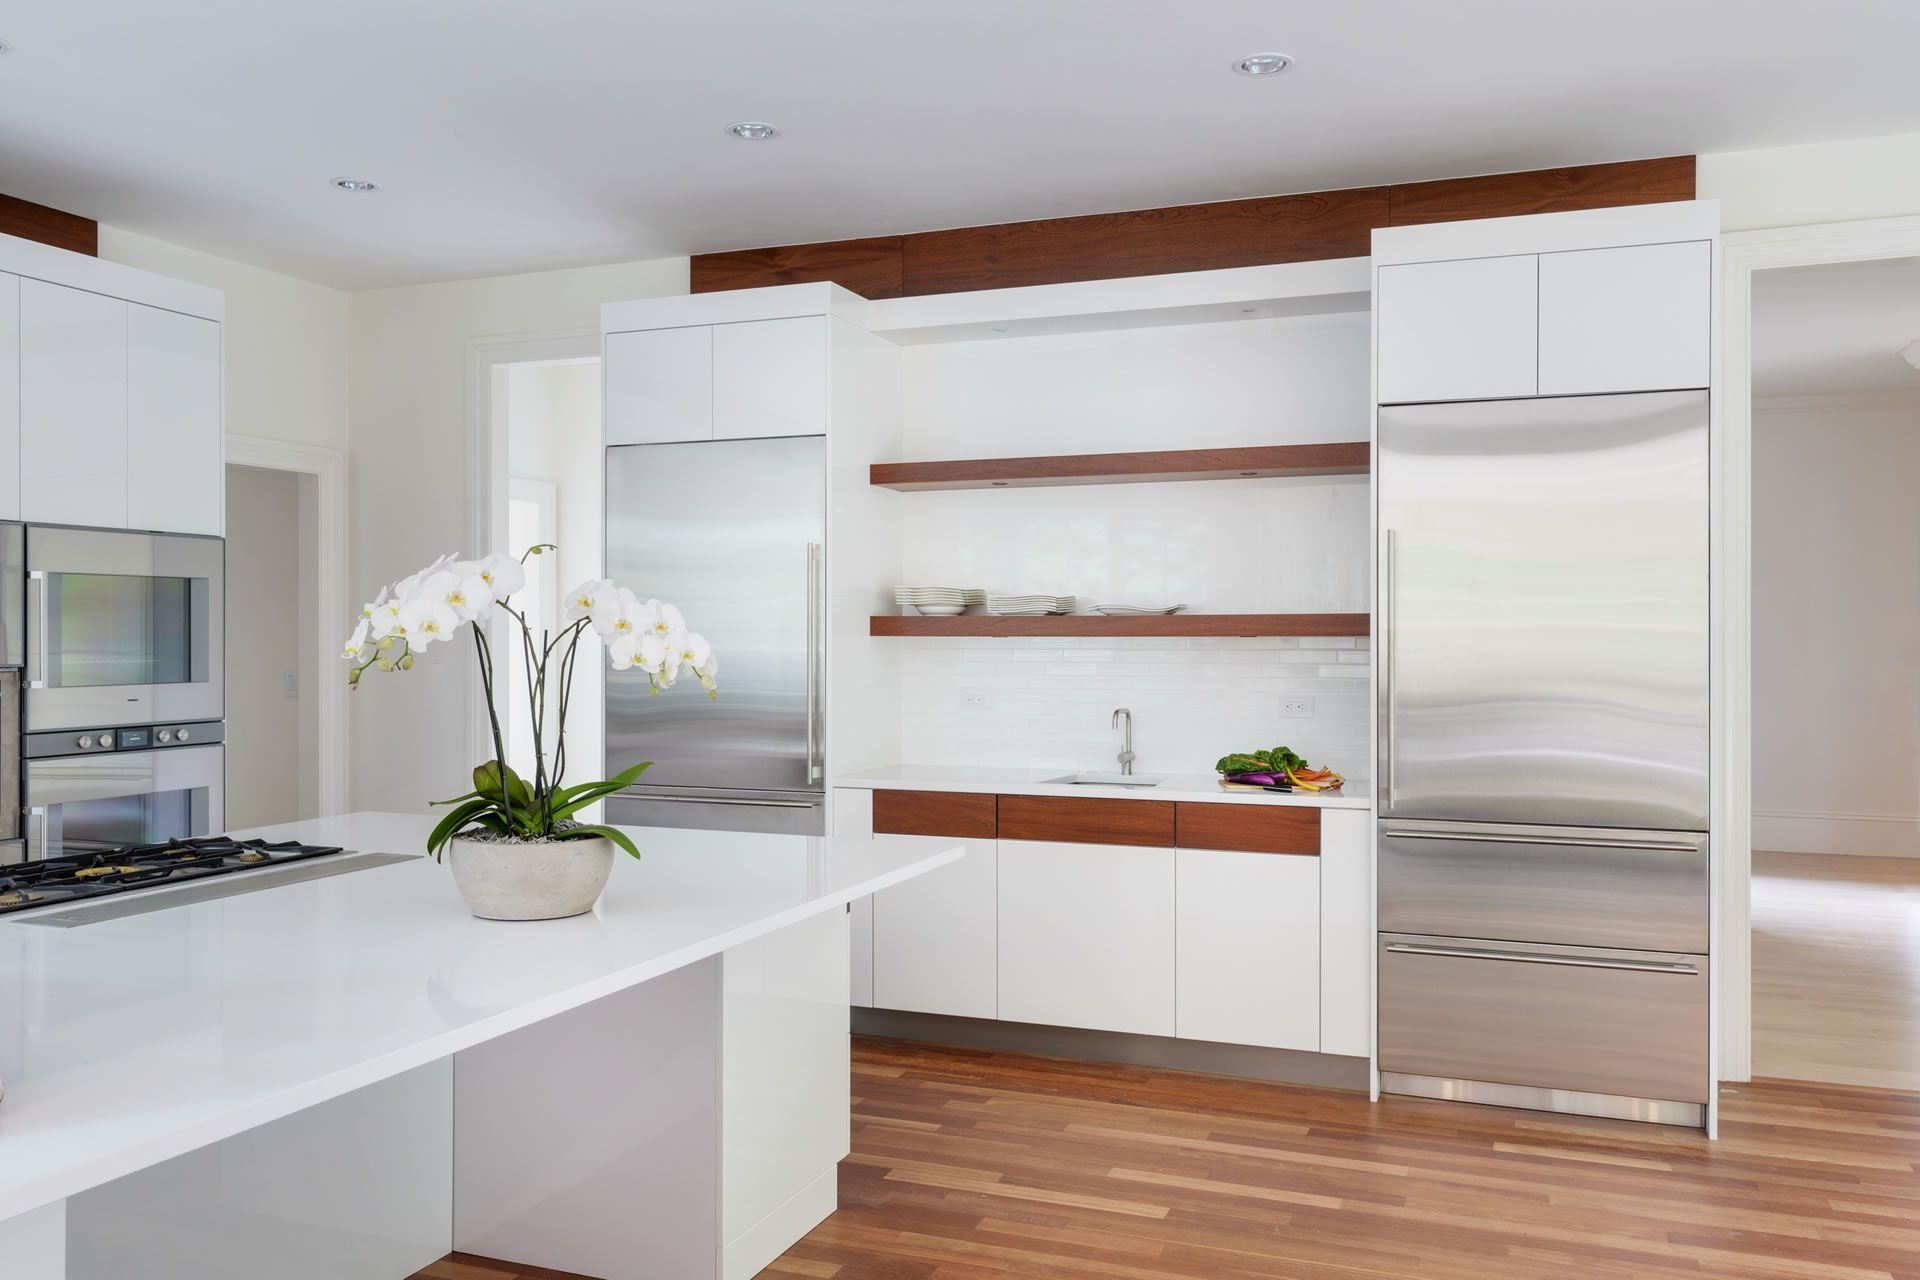 Newton Kitchens Design Exceptional Cabinetry Needham Ma Modern Kitchen Design White Modern Kitchen Old Country Kitchens